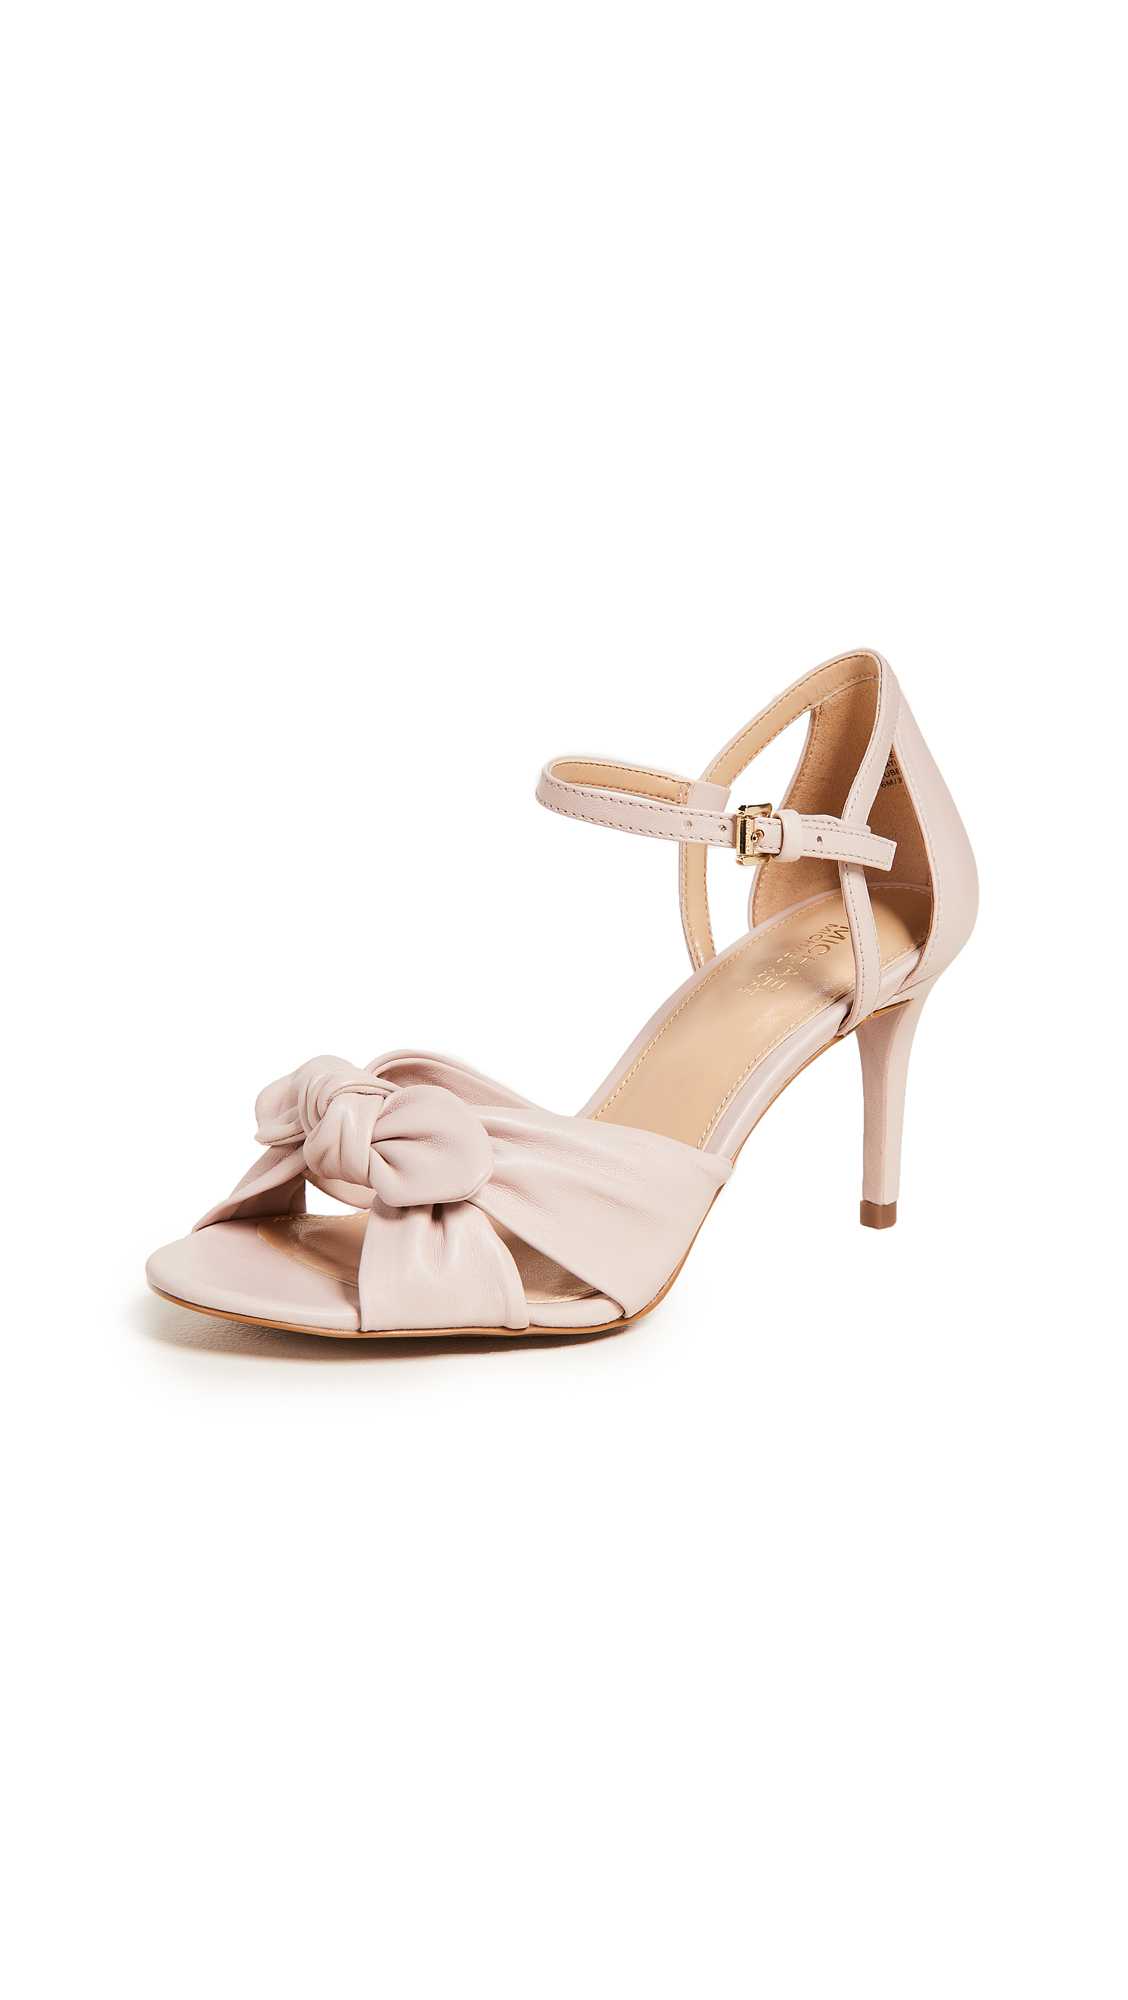 MICHAEL Michael Kors Pippa Strappy Sandals - Soft Pink